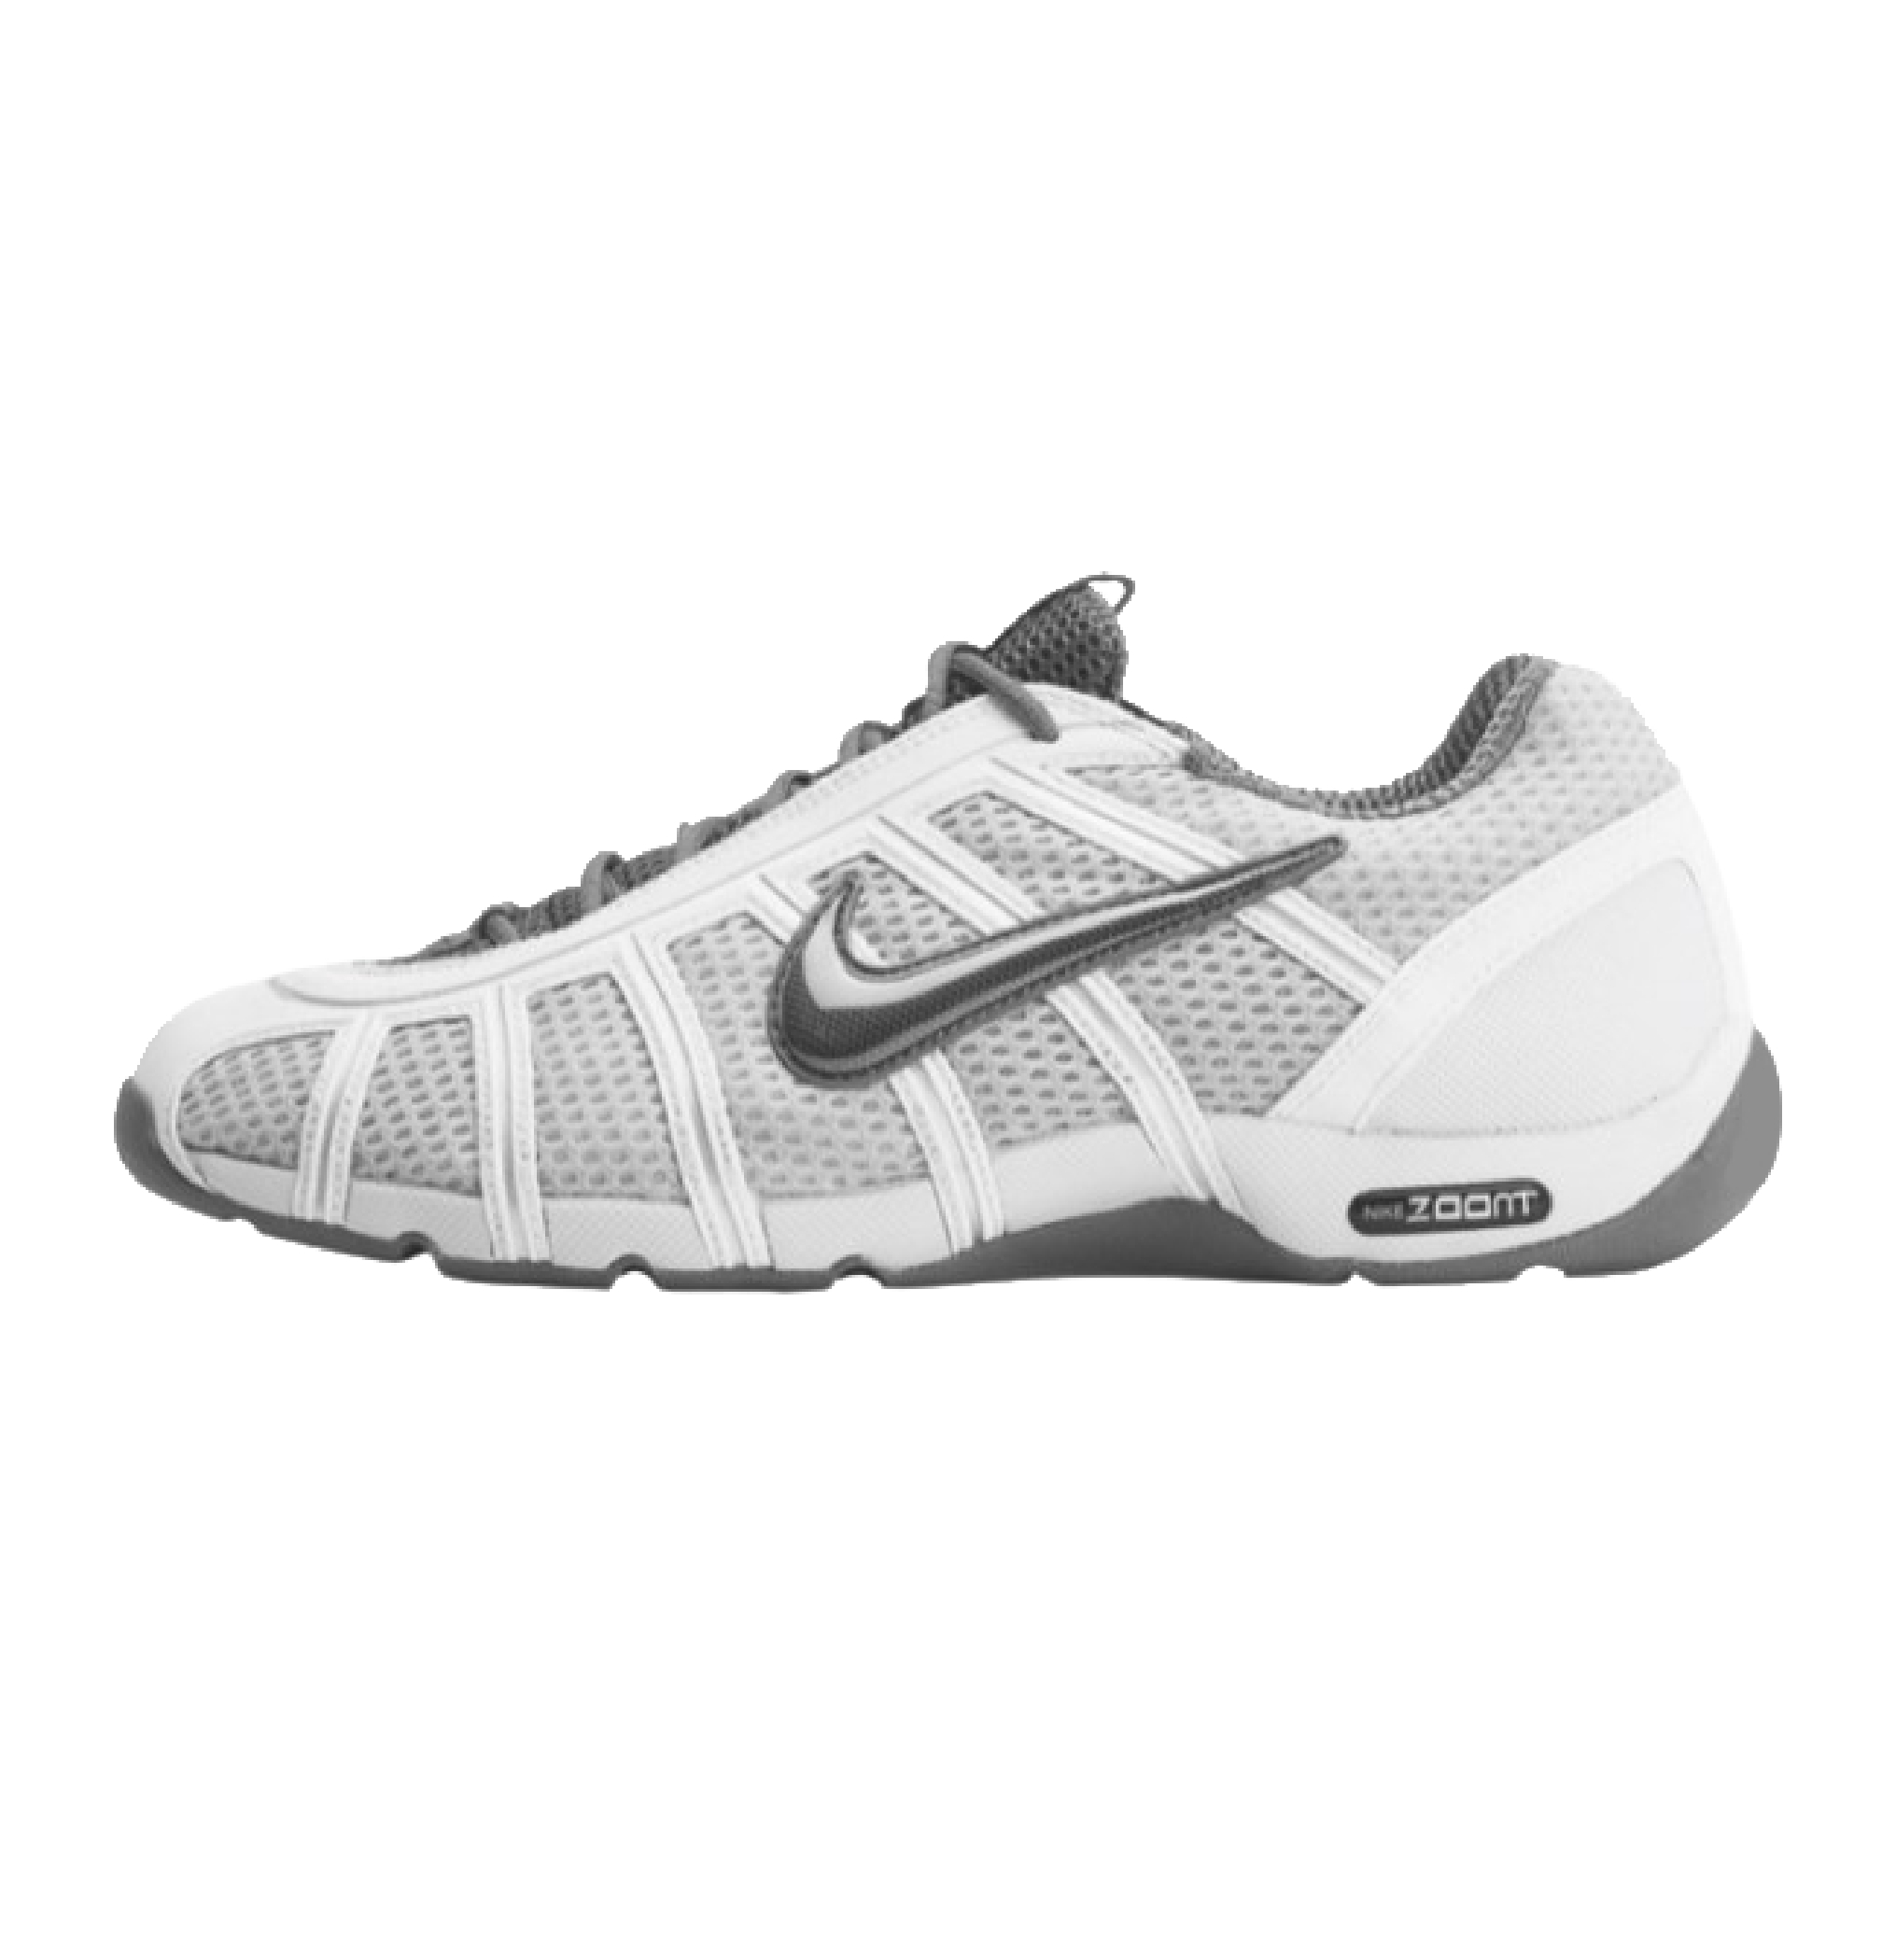 uk nike zoom fencing white Nike air zoom fencing shoes ...